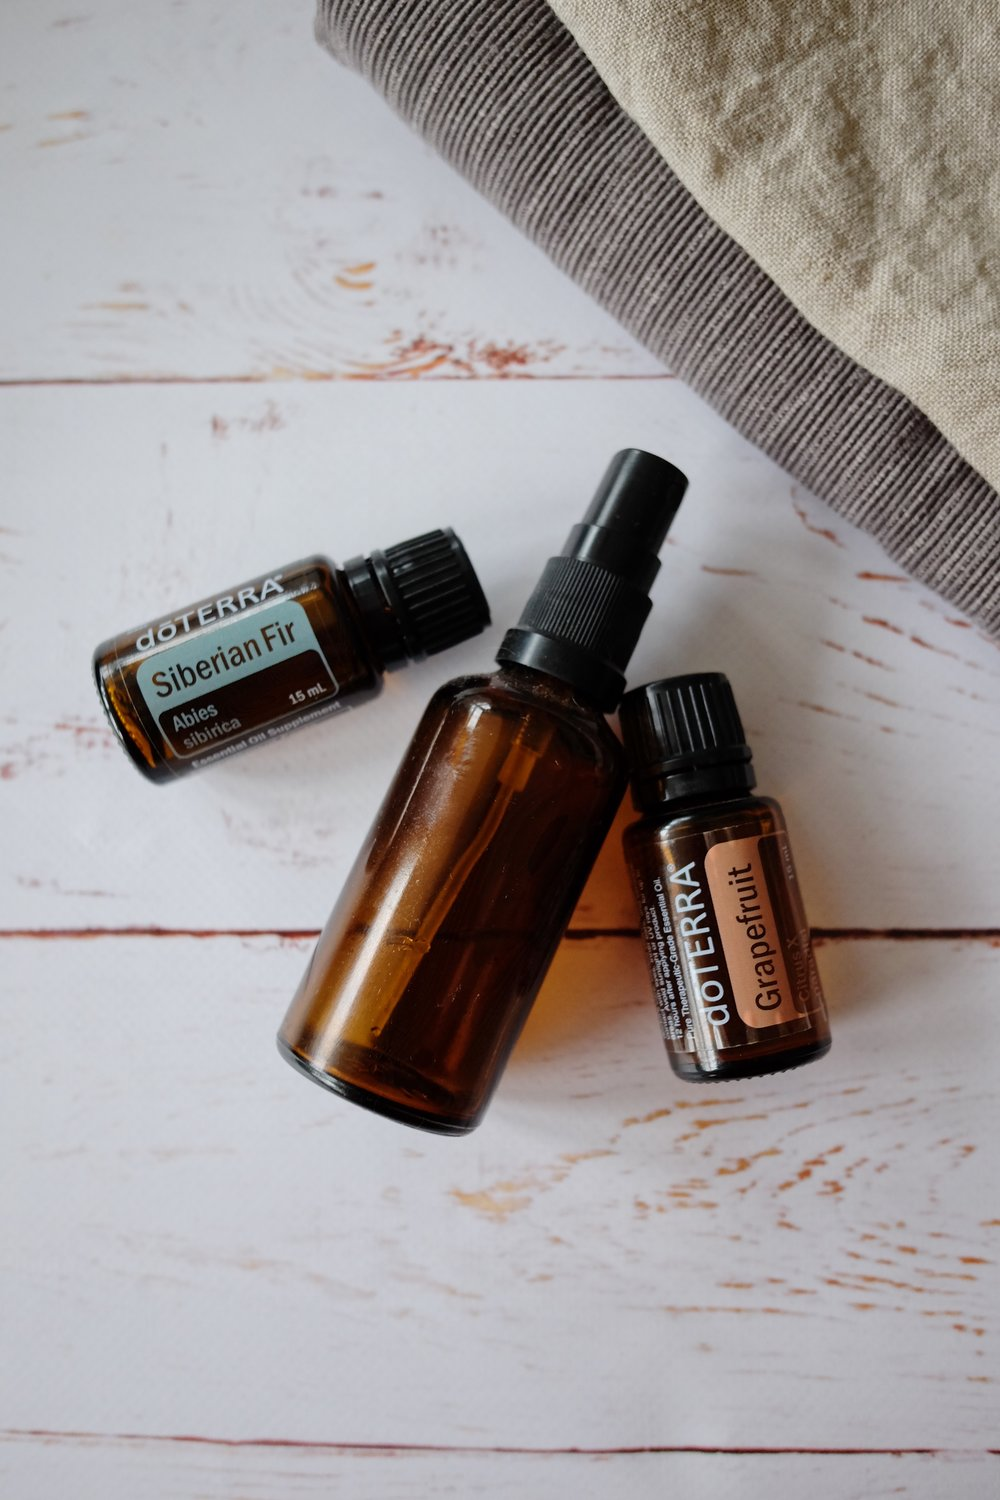 Essential oil linen spray - 10 drops each of Siberian Fir and Grapefruit. Mix with water in a glass bottle and shake before each use.Spray your linen before folding and storing.